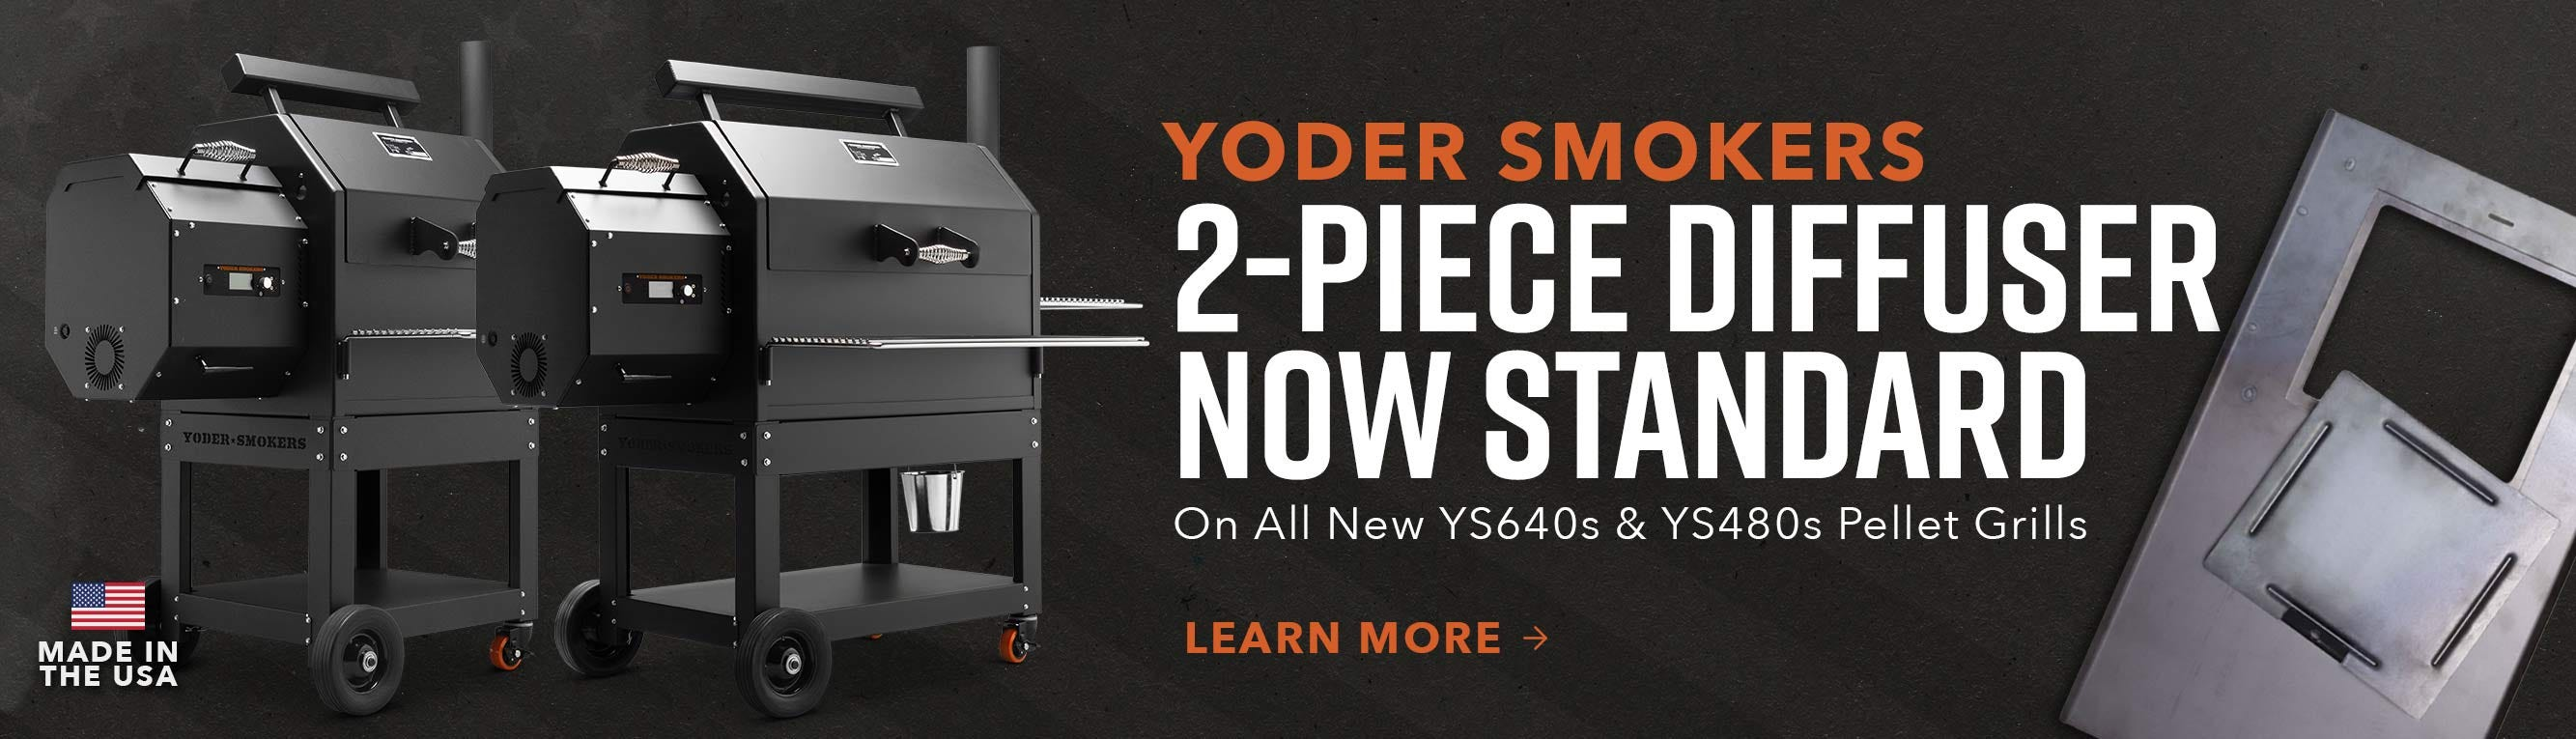 2-Piece Diffuser now standard on Yoder Pellet Grills